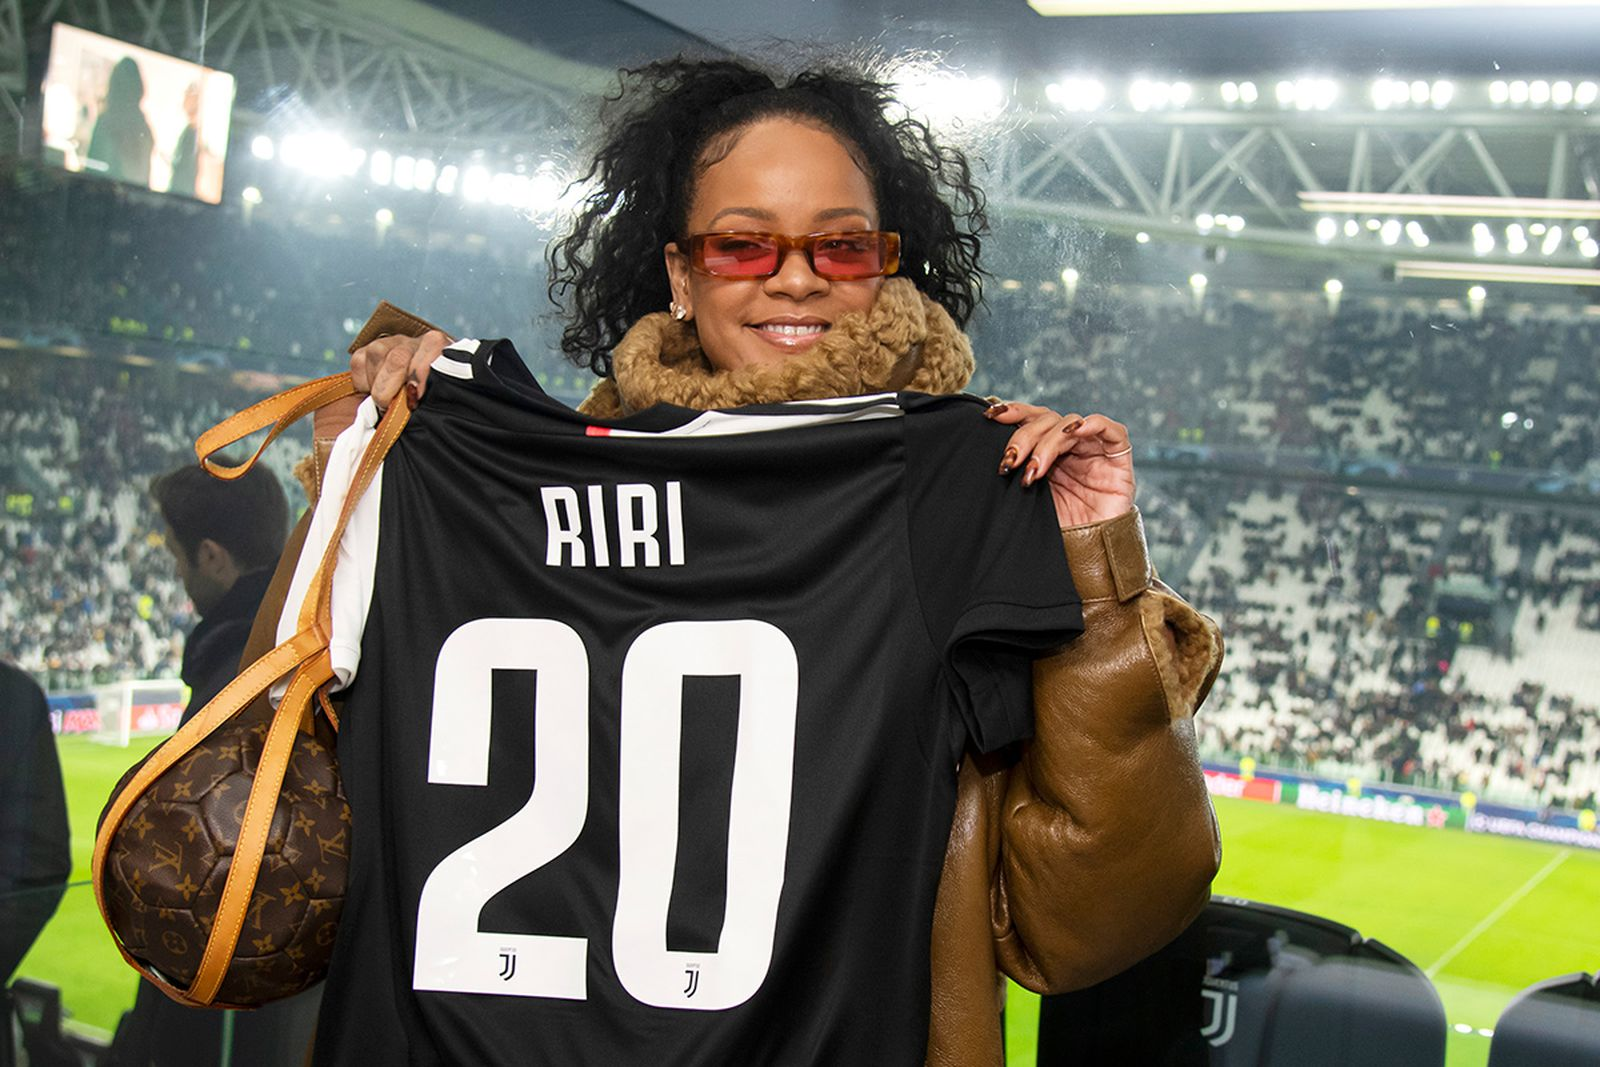 rihanna is all in on the juventus hype after attending ucl match juventus hype after attending ucl match